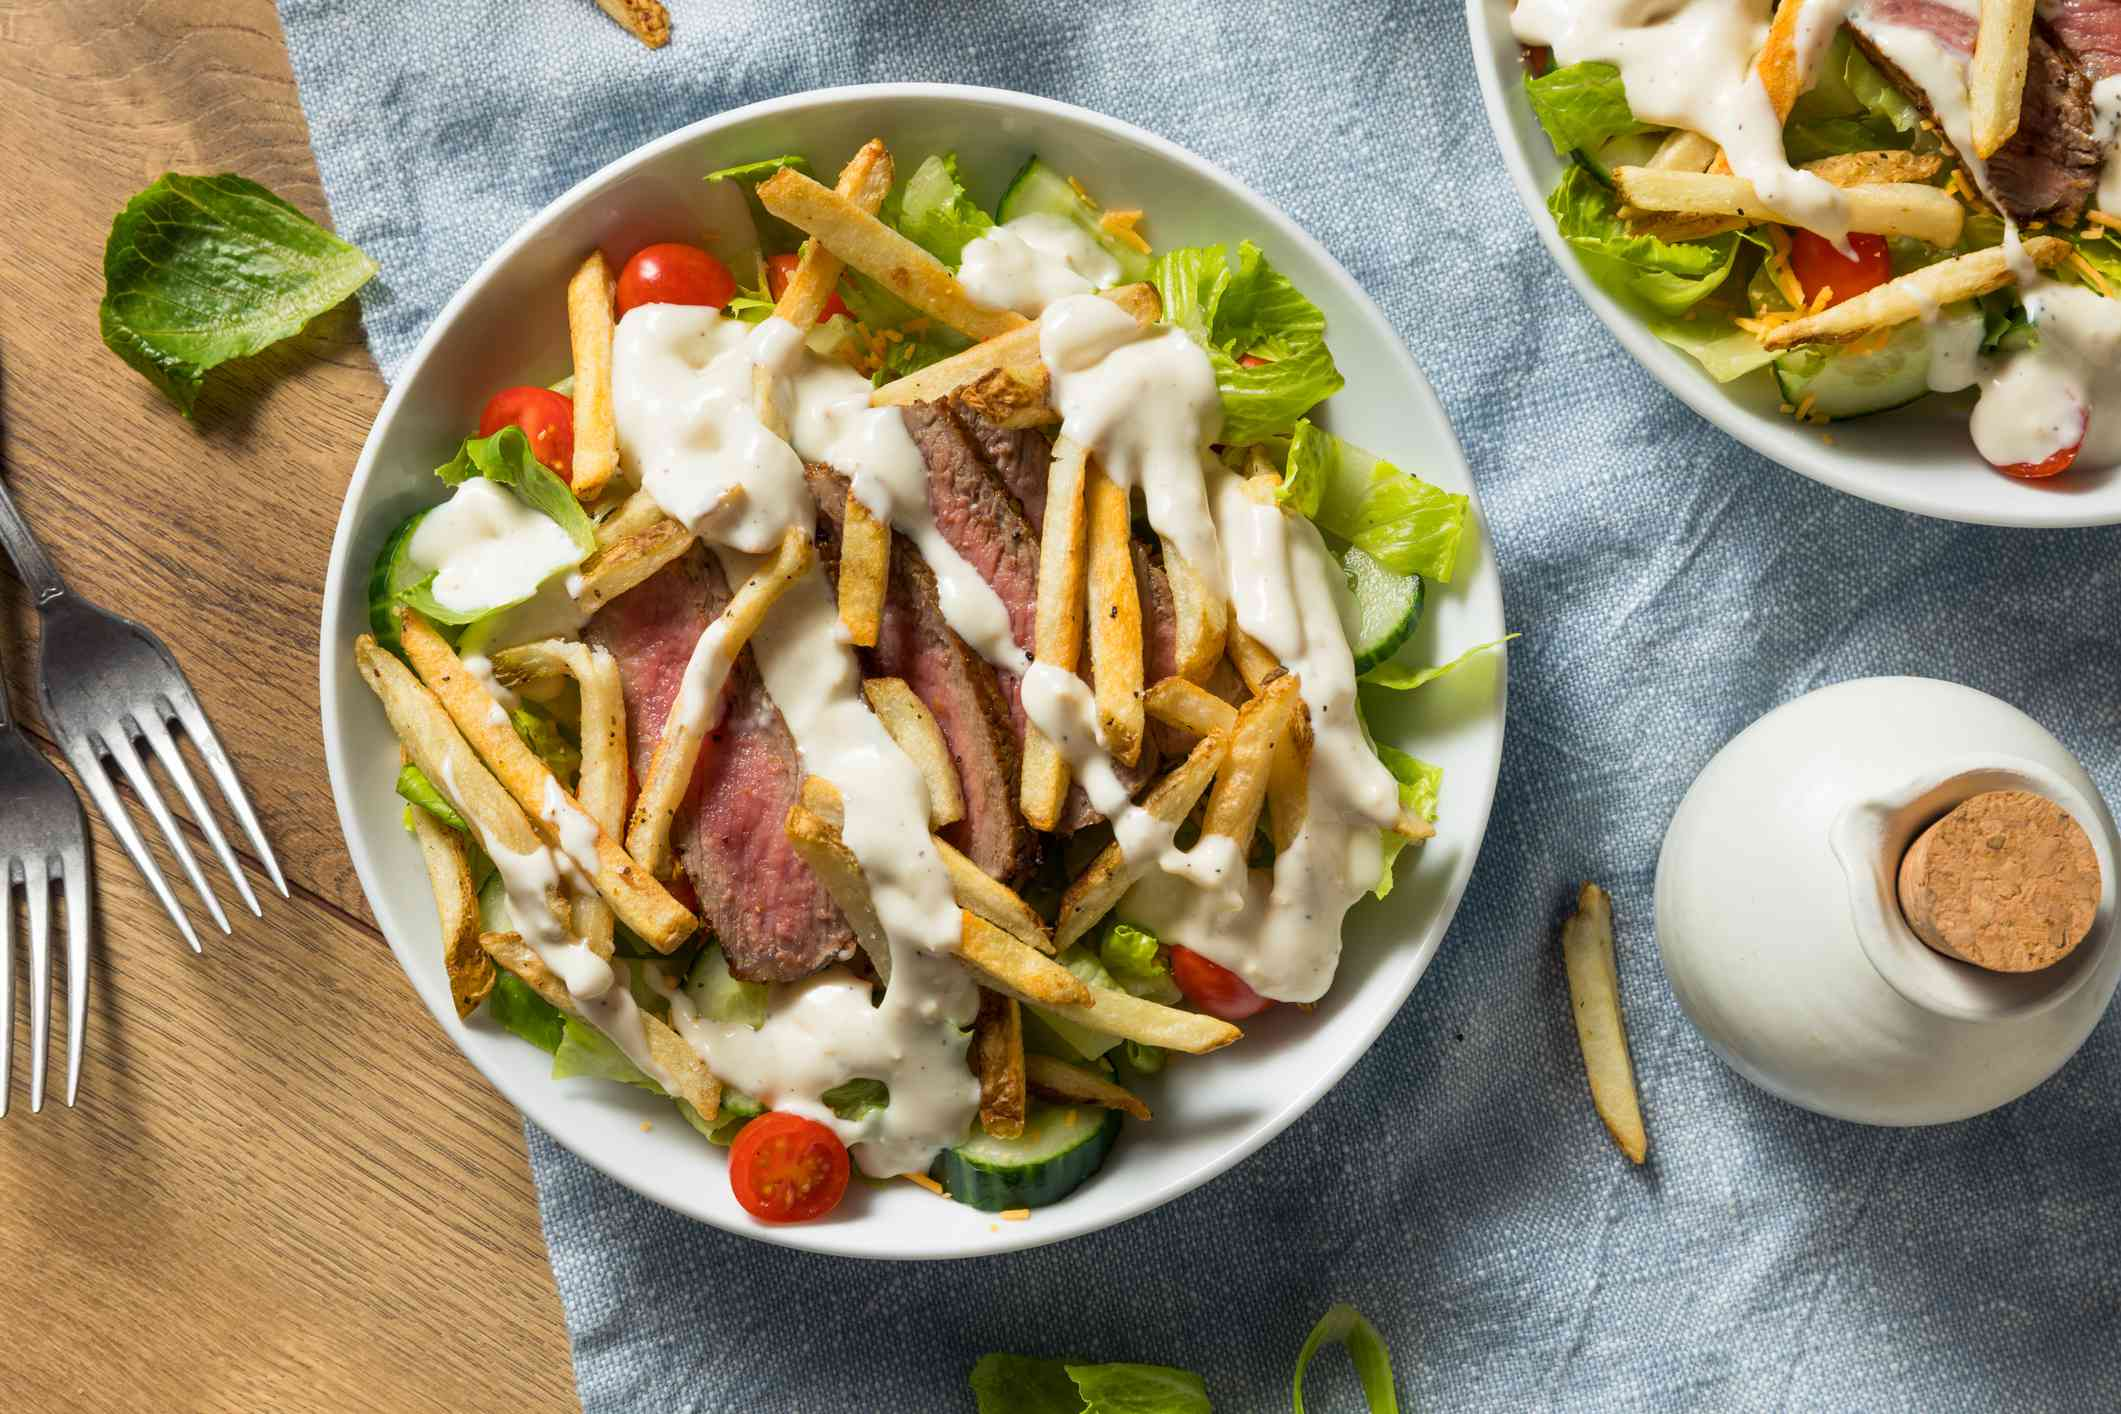 Homemade Pittsburgh Salad with Steak